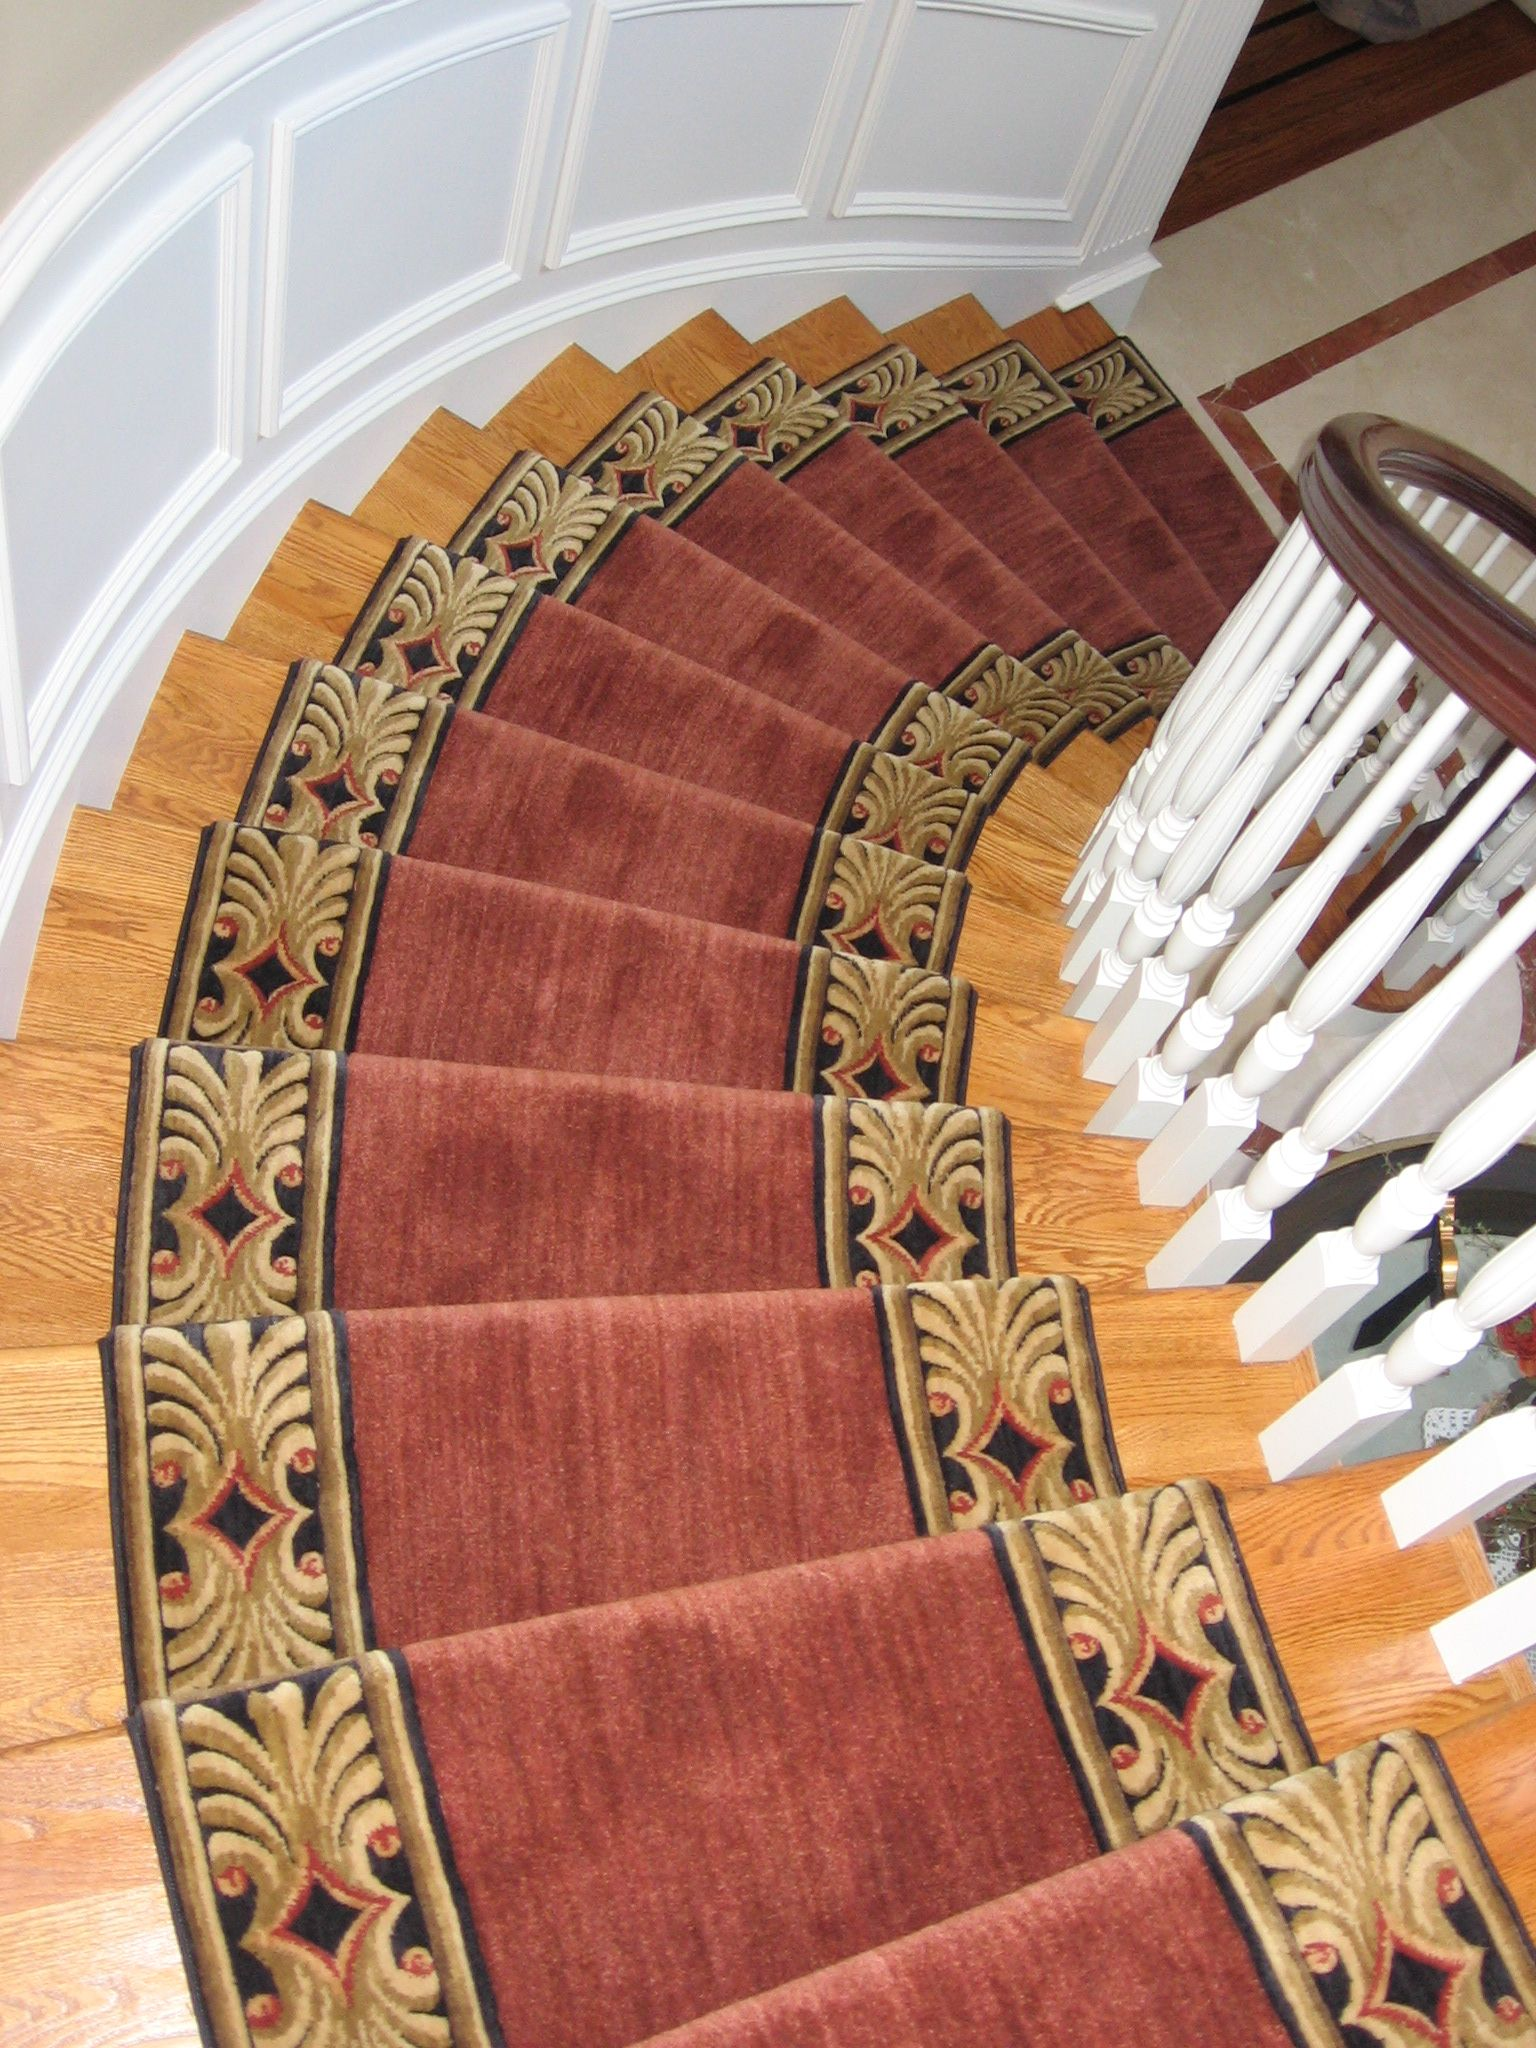 Custom Made Stair Runner By G. Fried Carpet U0026 Design, Paramus NJ